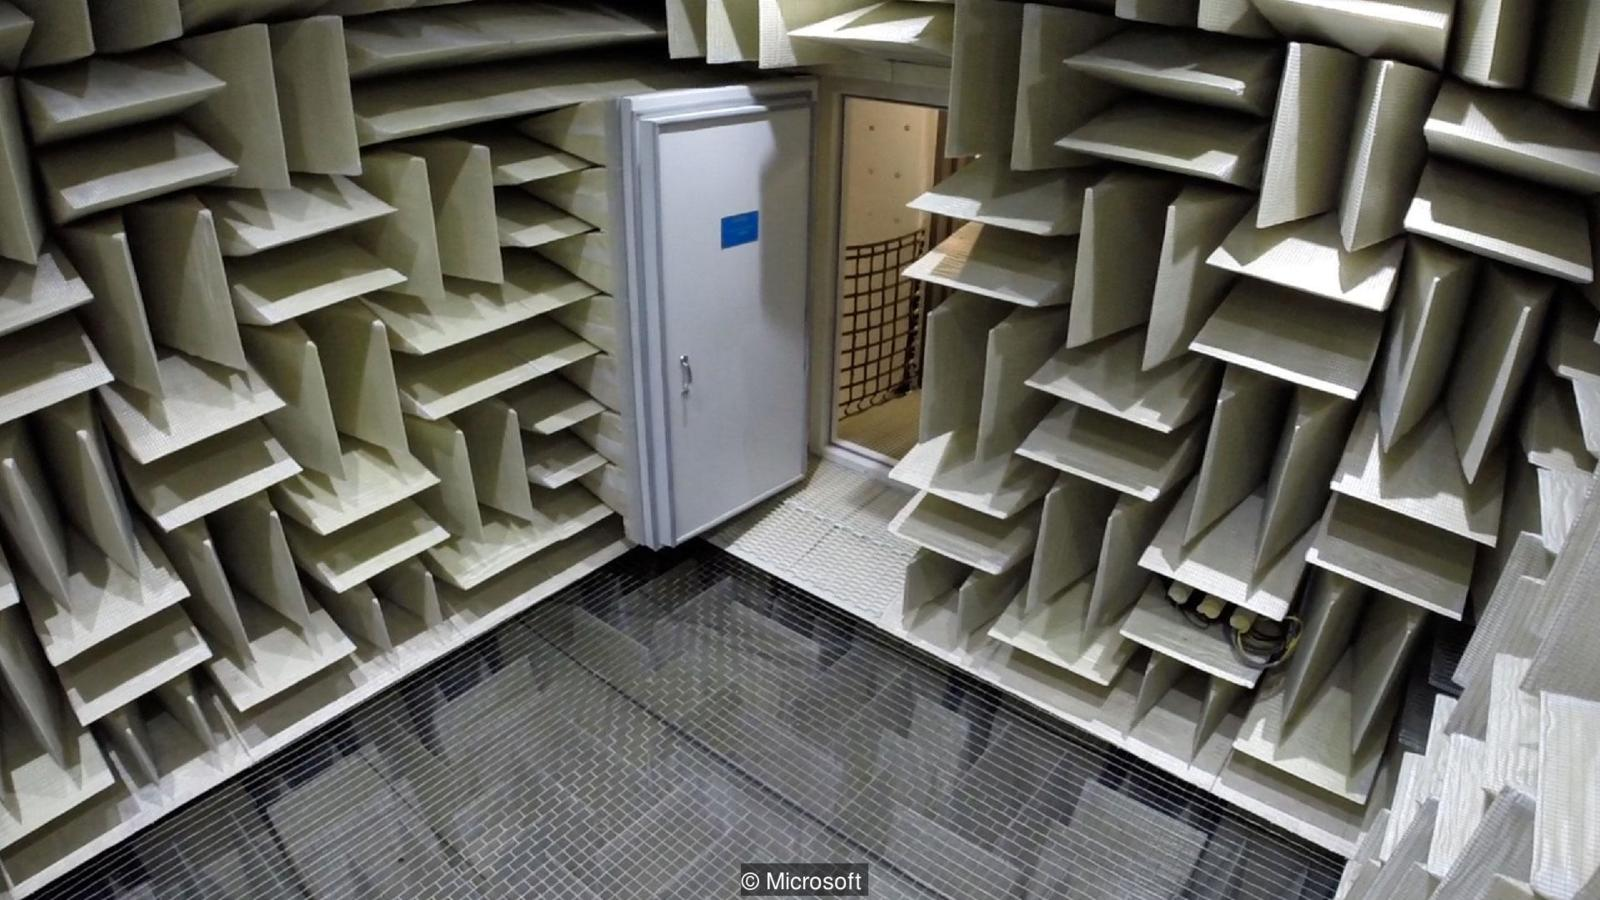 Soundproofing R Us World's Quietest Room Courtesy of Microsoft